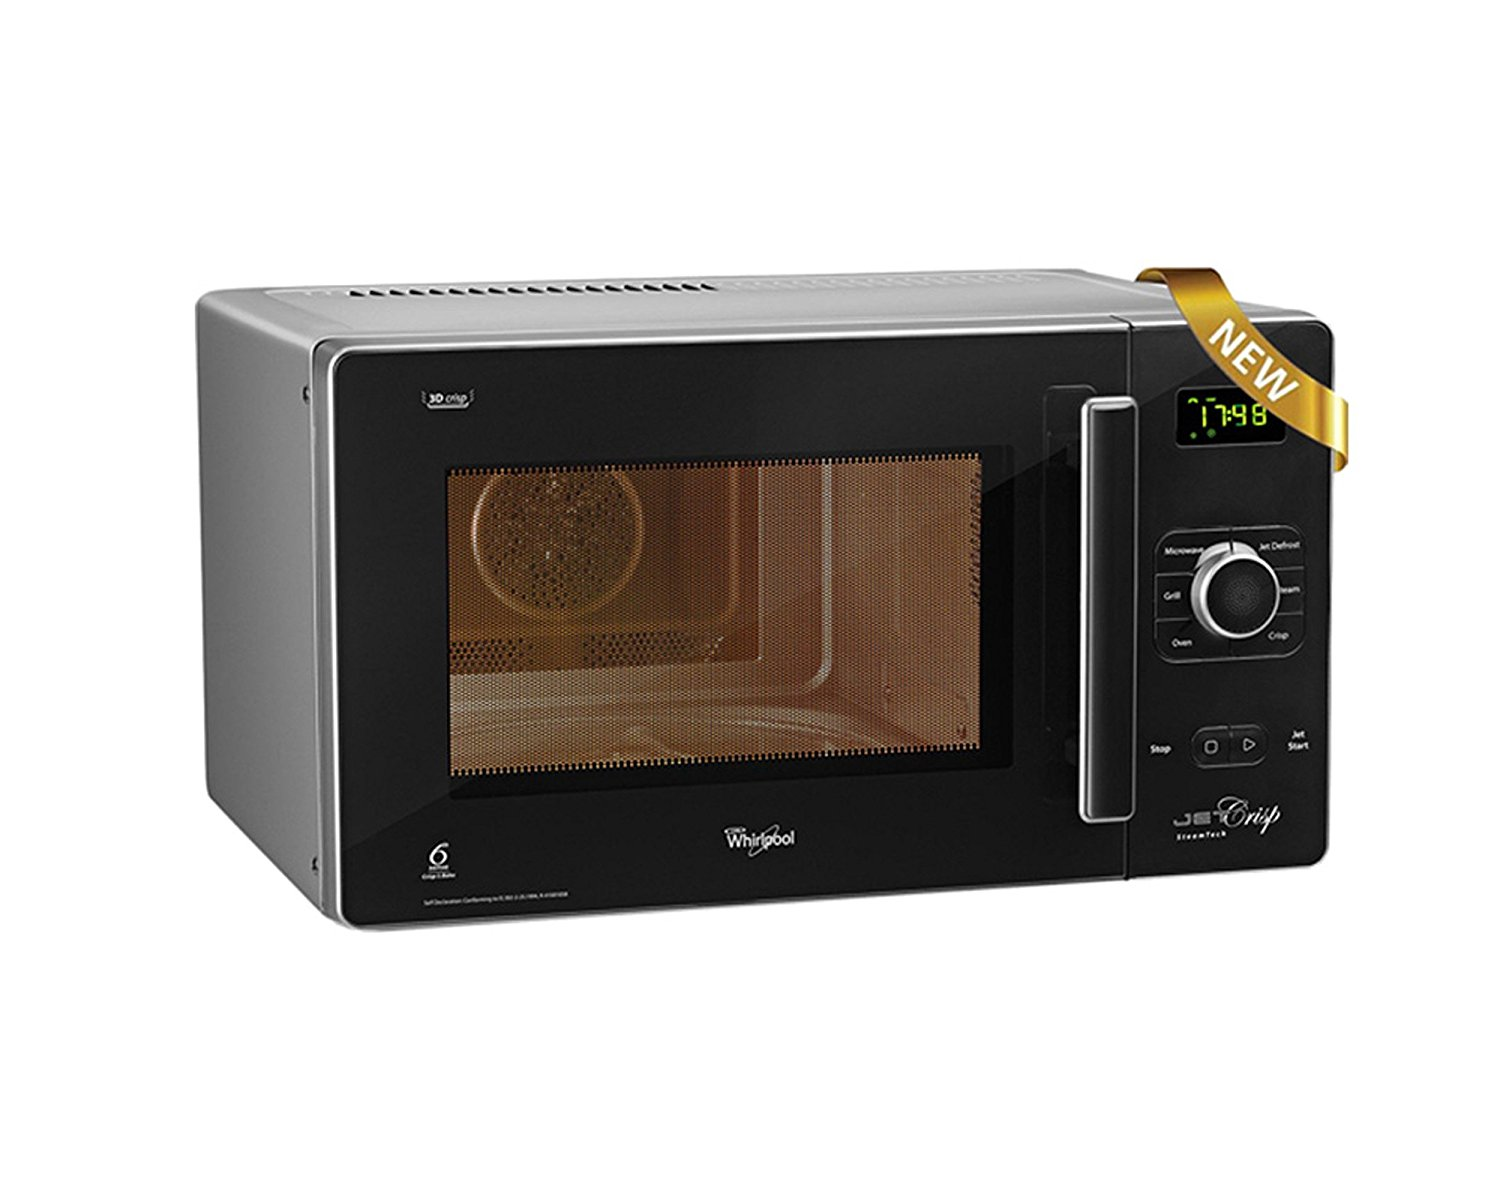 jet crisp Whilpool microwave